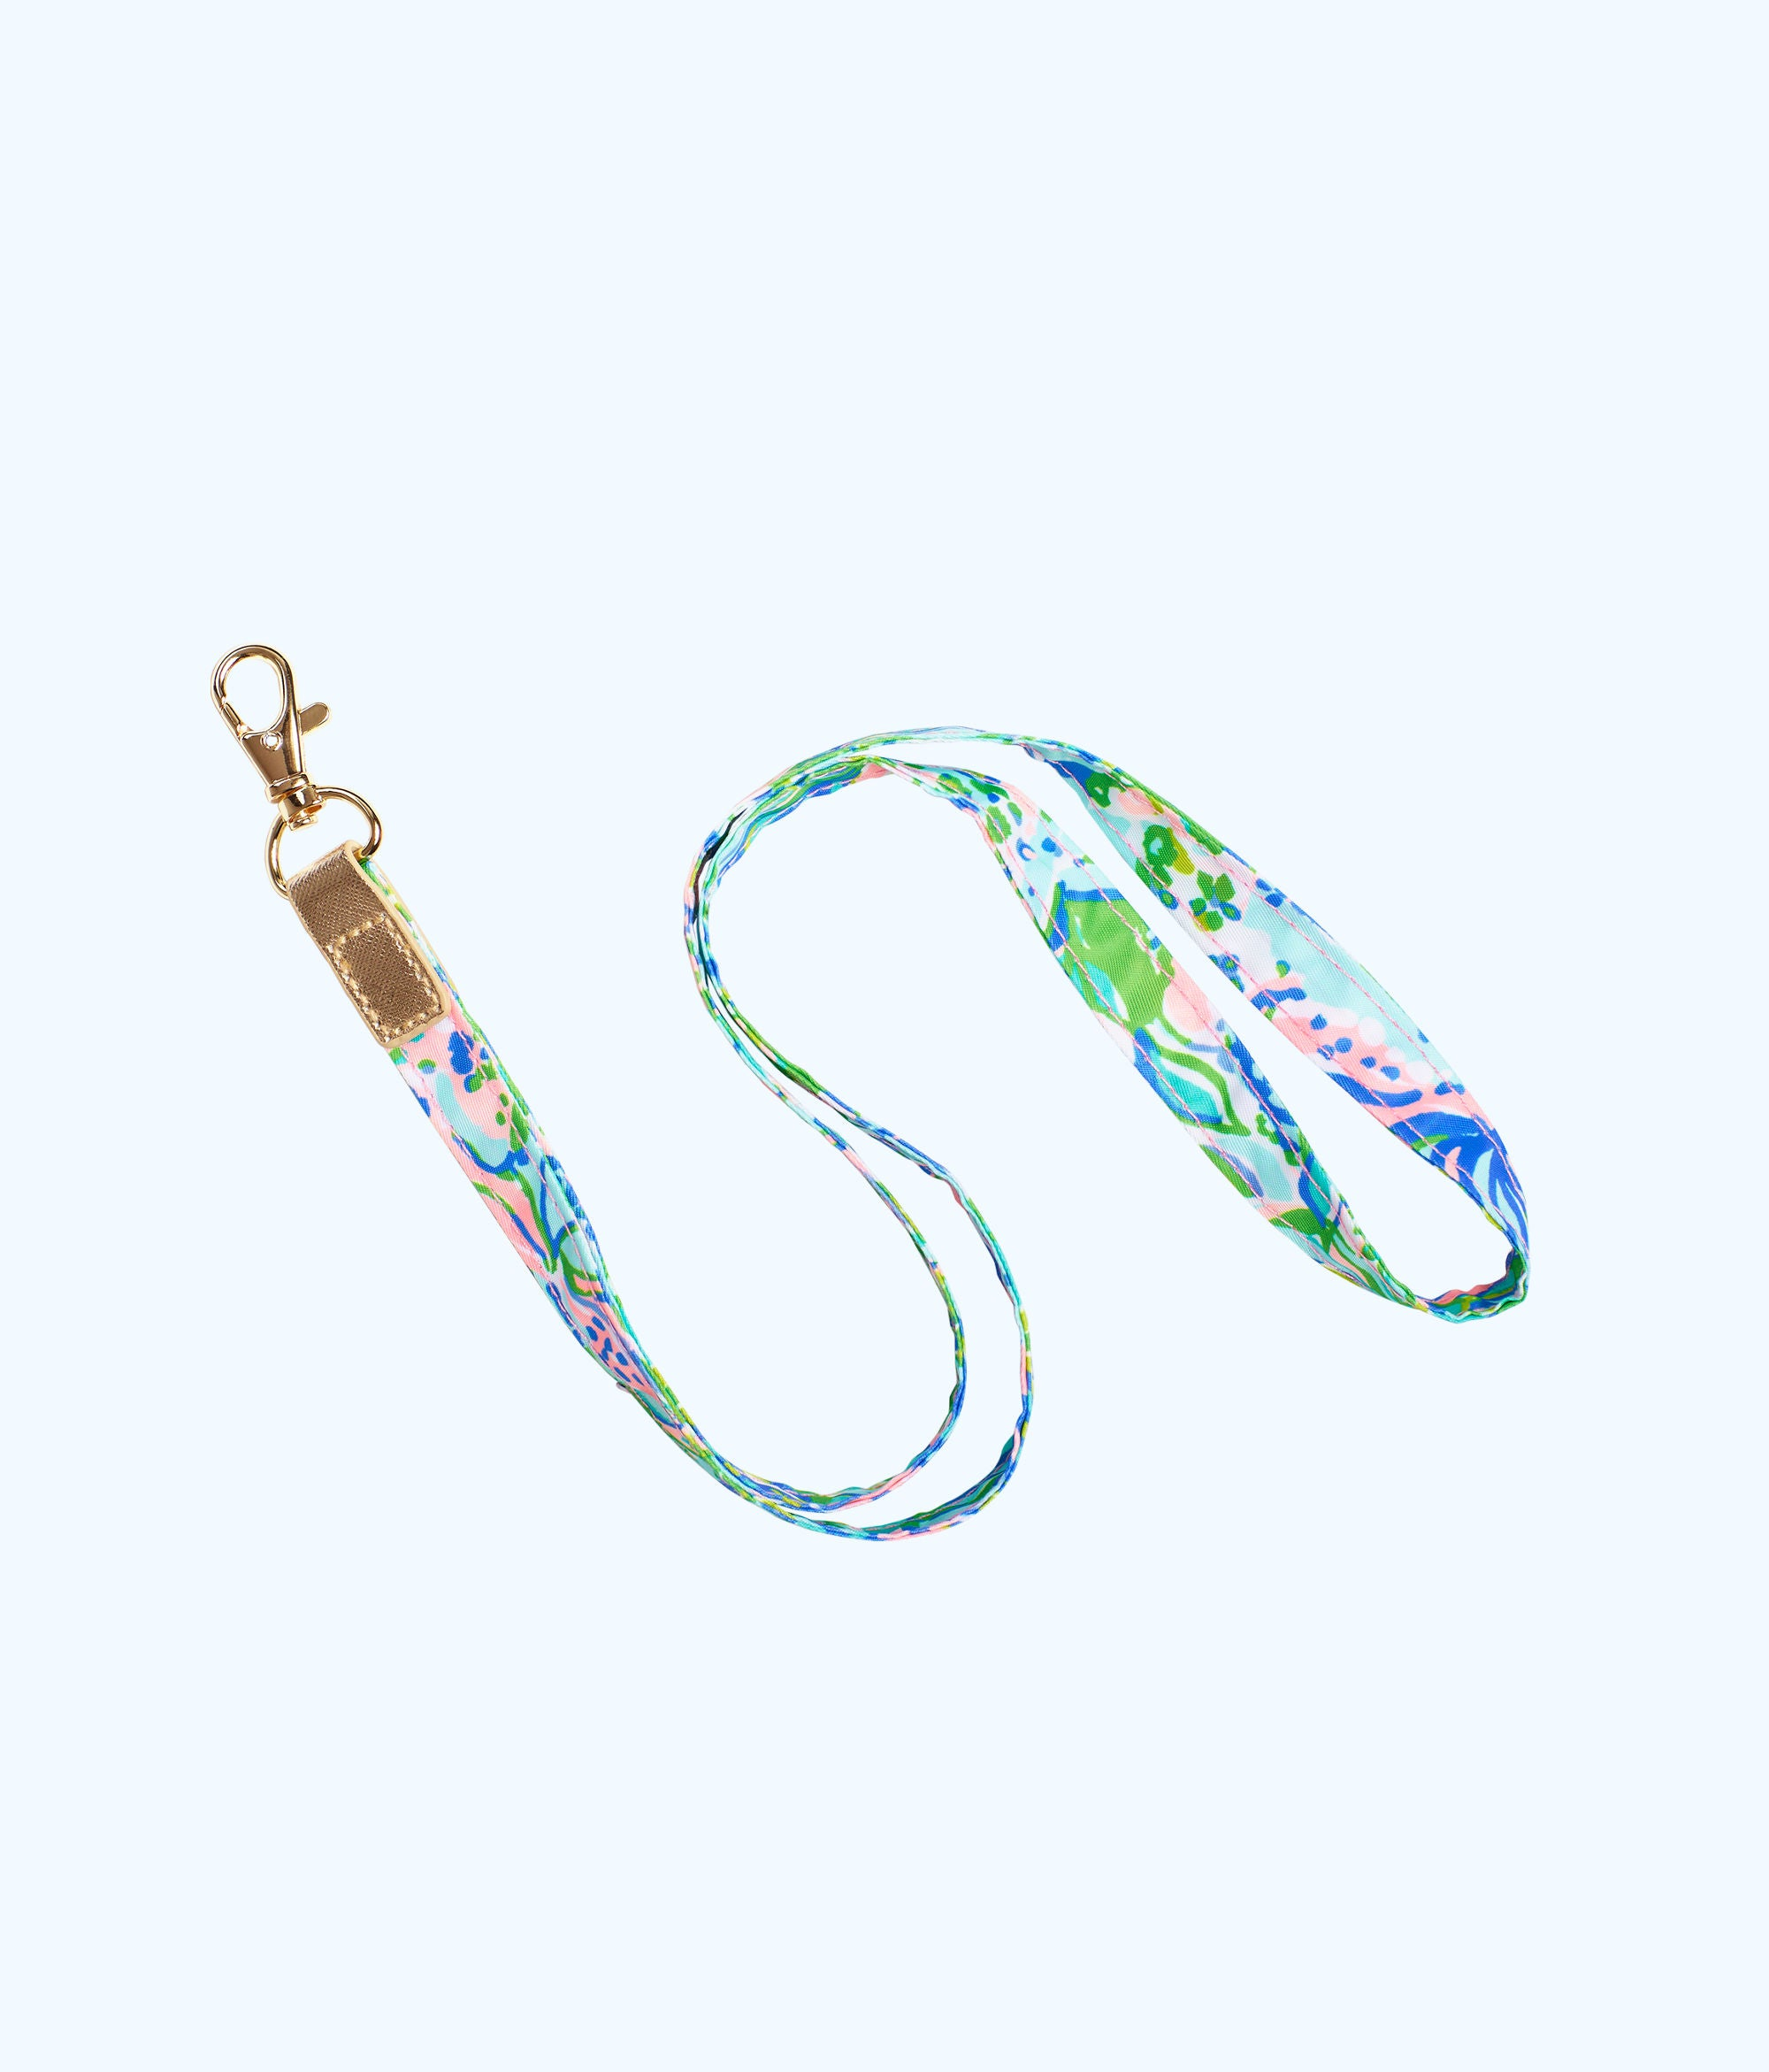 Lilly Pulitzer Lilly Lanyard - Multi Feline Good Accessories Small Select Size